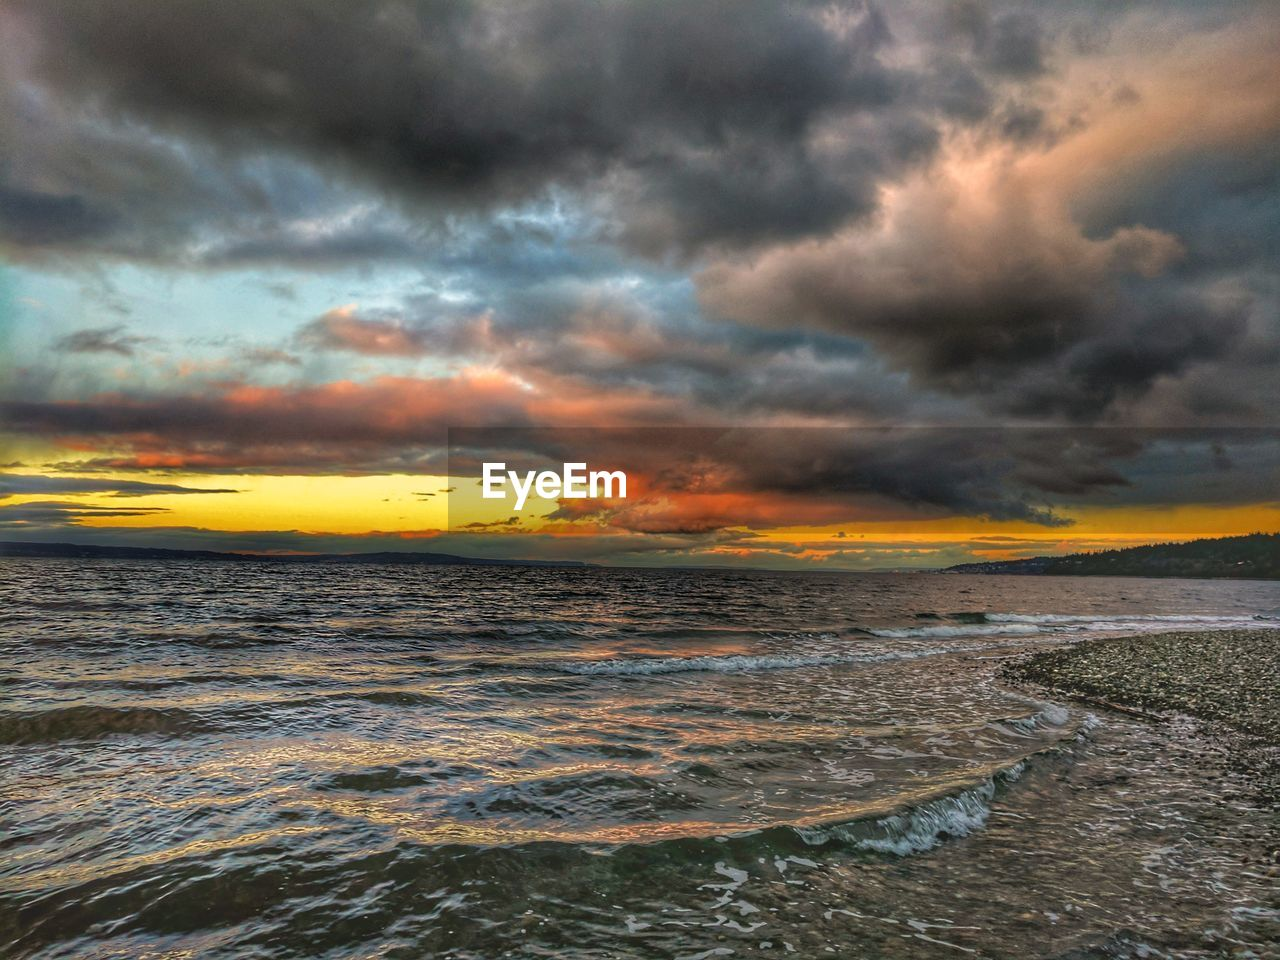 VIEW OF DRAMATIC SKY OVER SEA